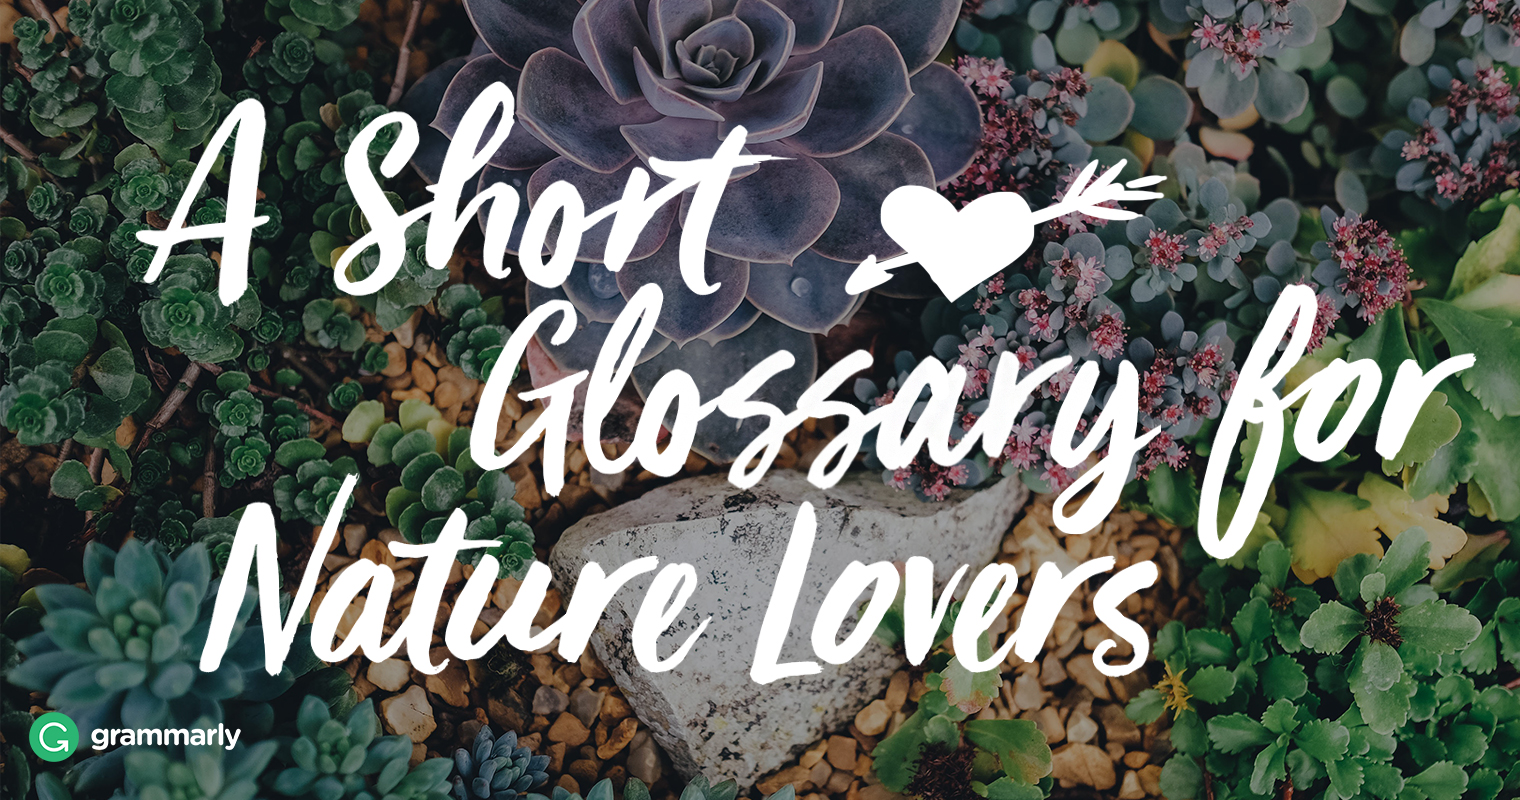 7 words for nature lovers grammarly blog izmirmasajfo